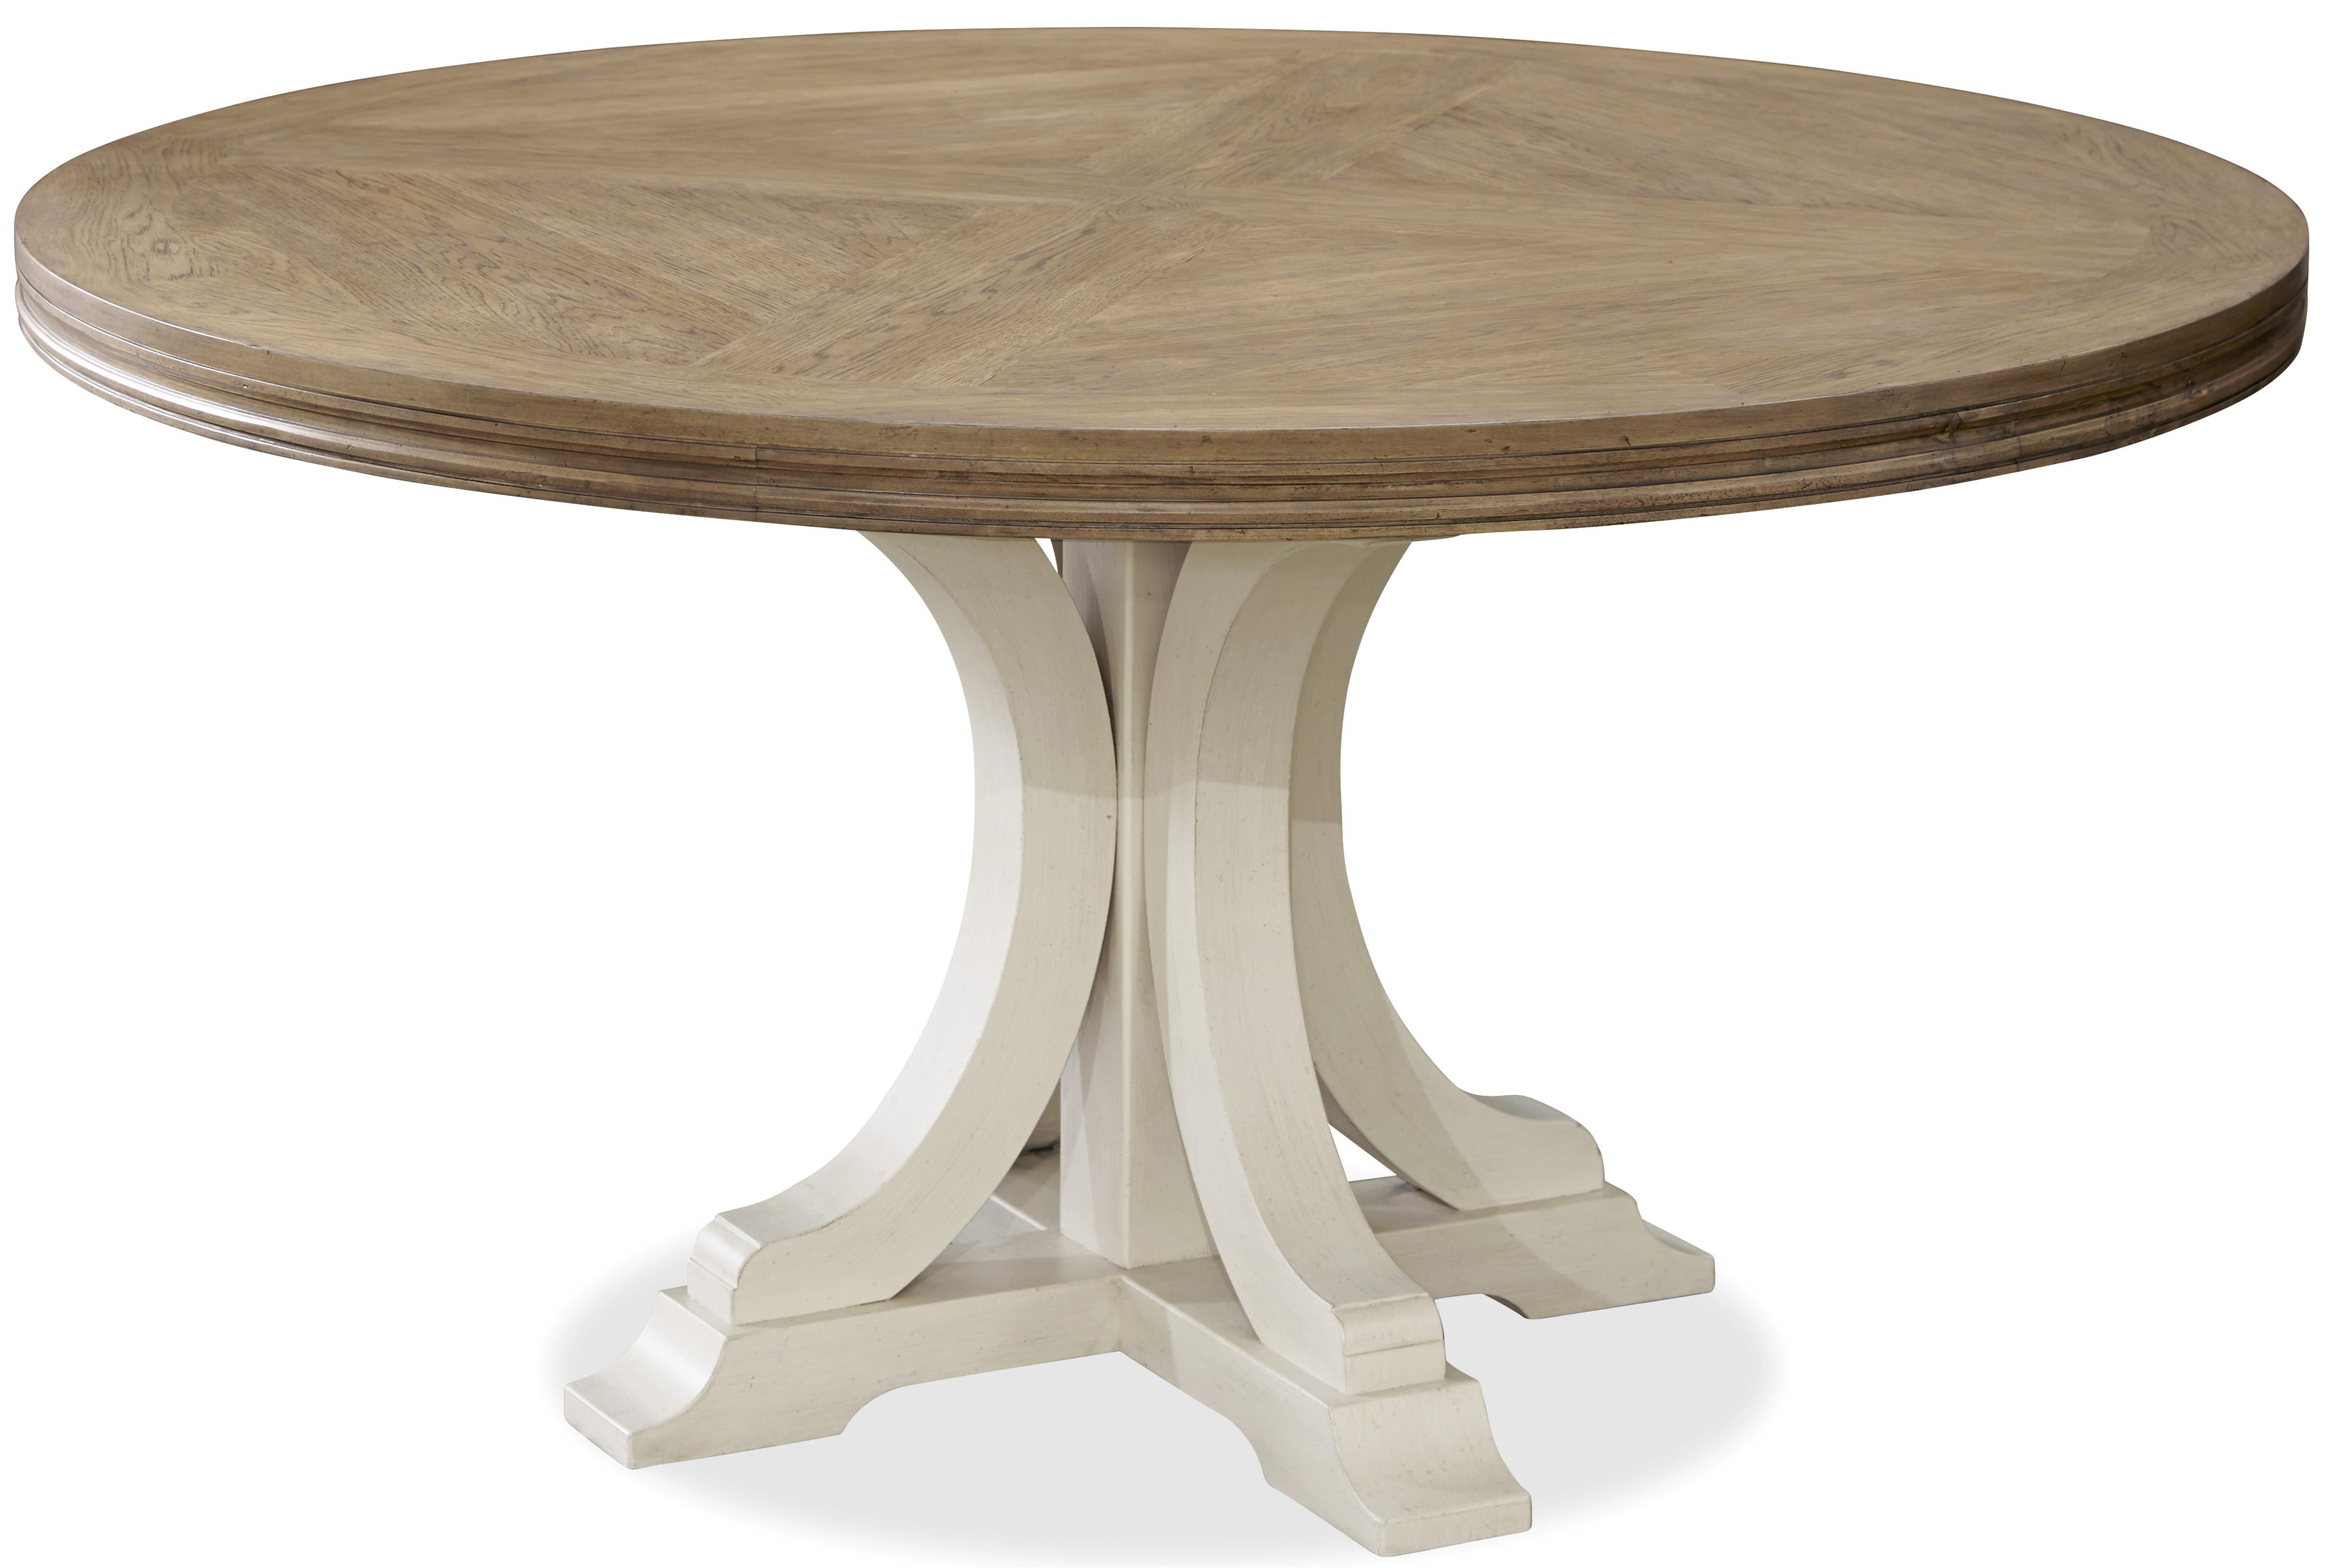 Universal Moderne Muse Round Dining Table with Pedestal  : products2Funiversal2Fcolor2Fmoderne20muse20 201611495733414657 b1 from www.dunkandbright.com size 4000 x 2694 jpeg 462kB